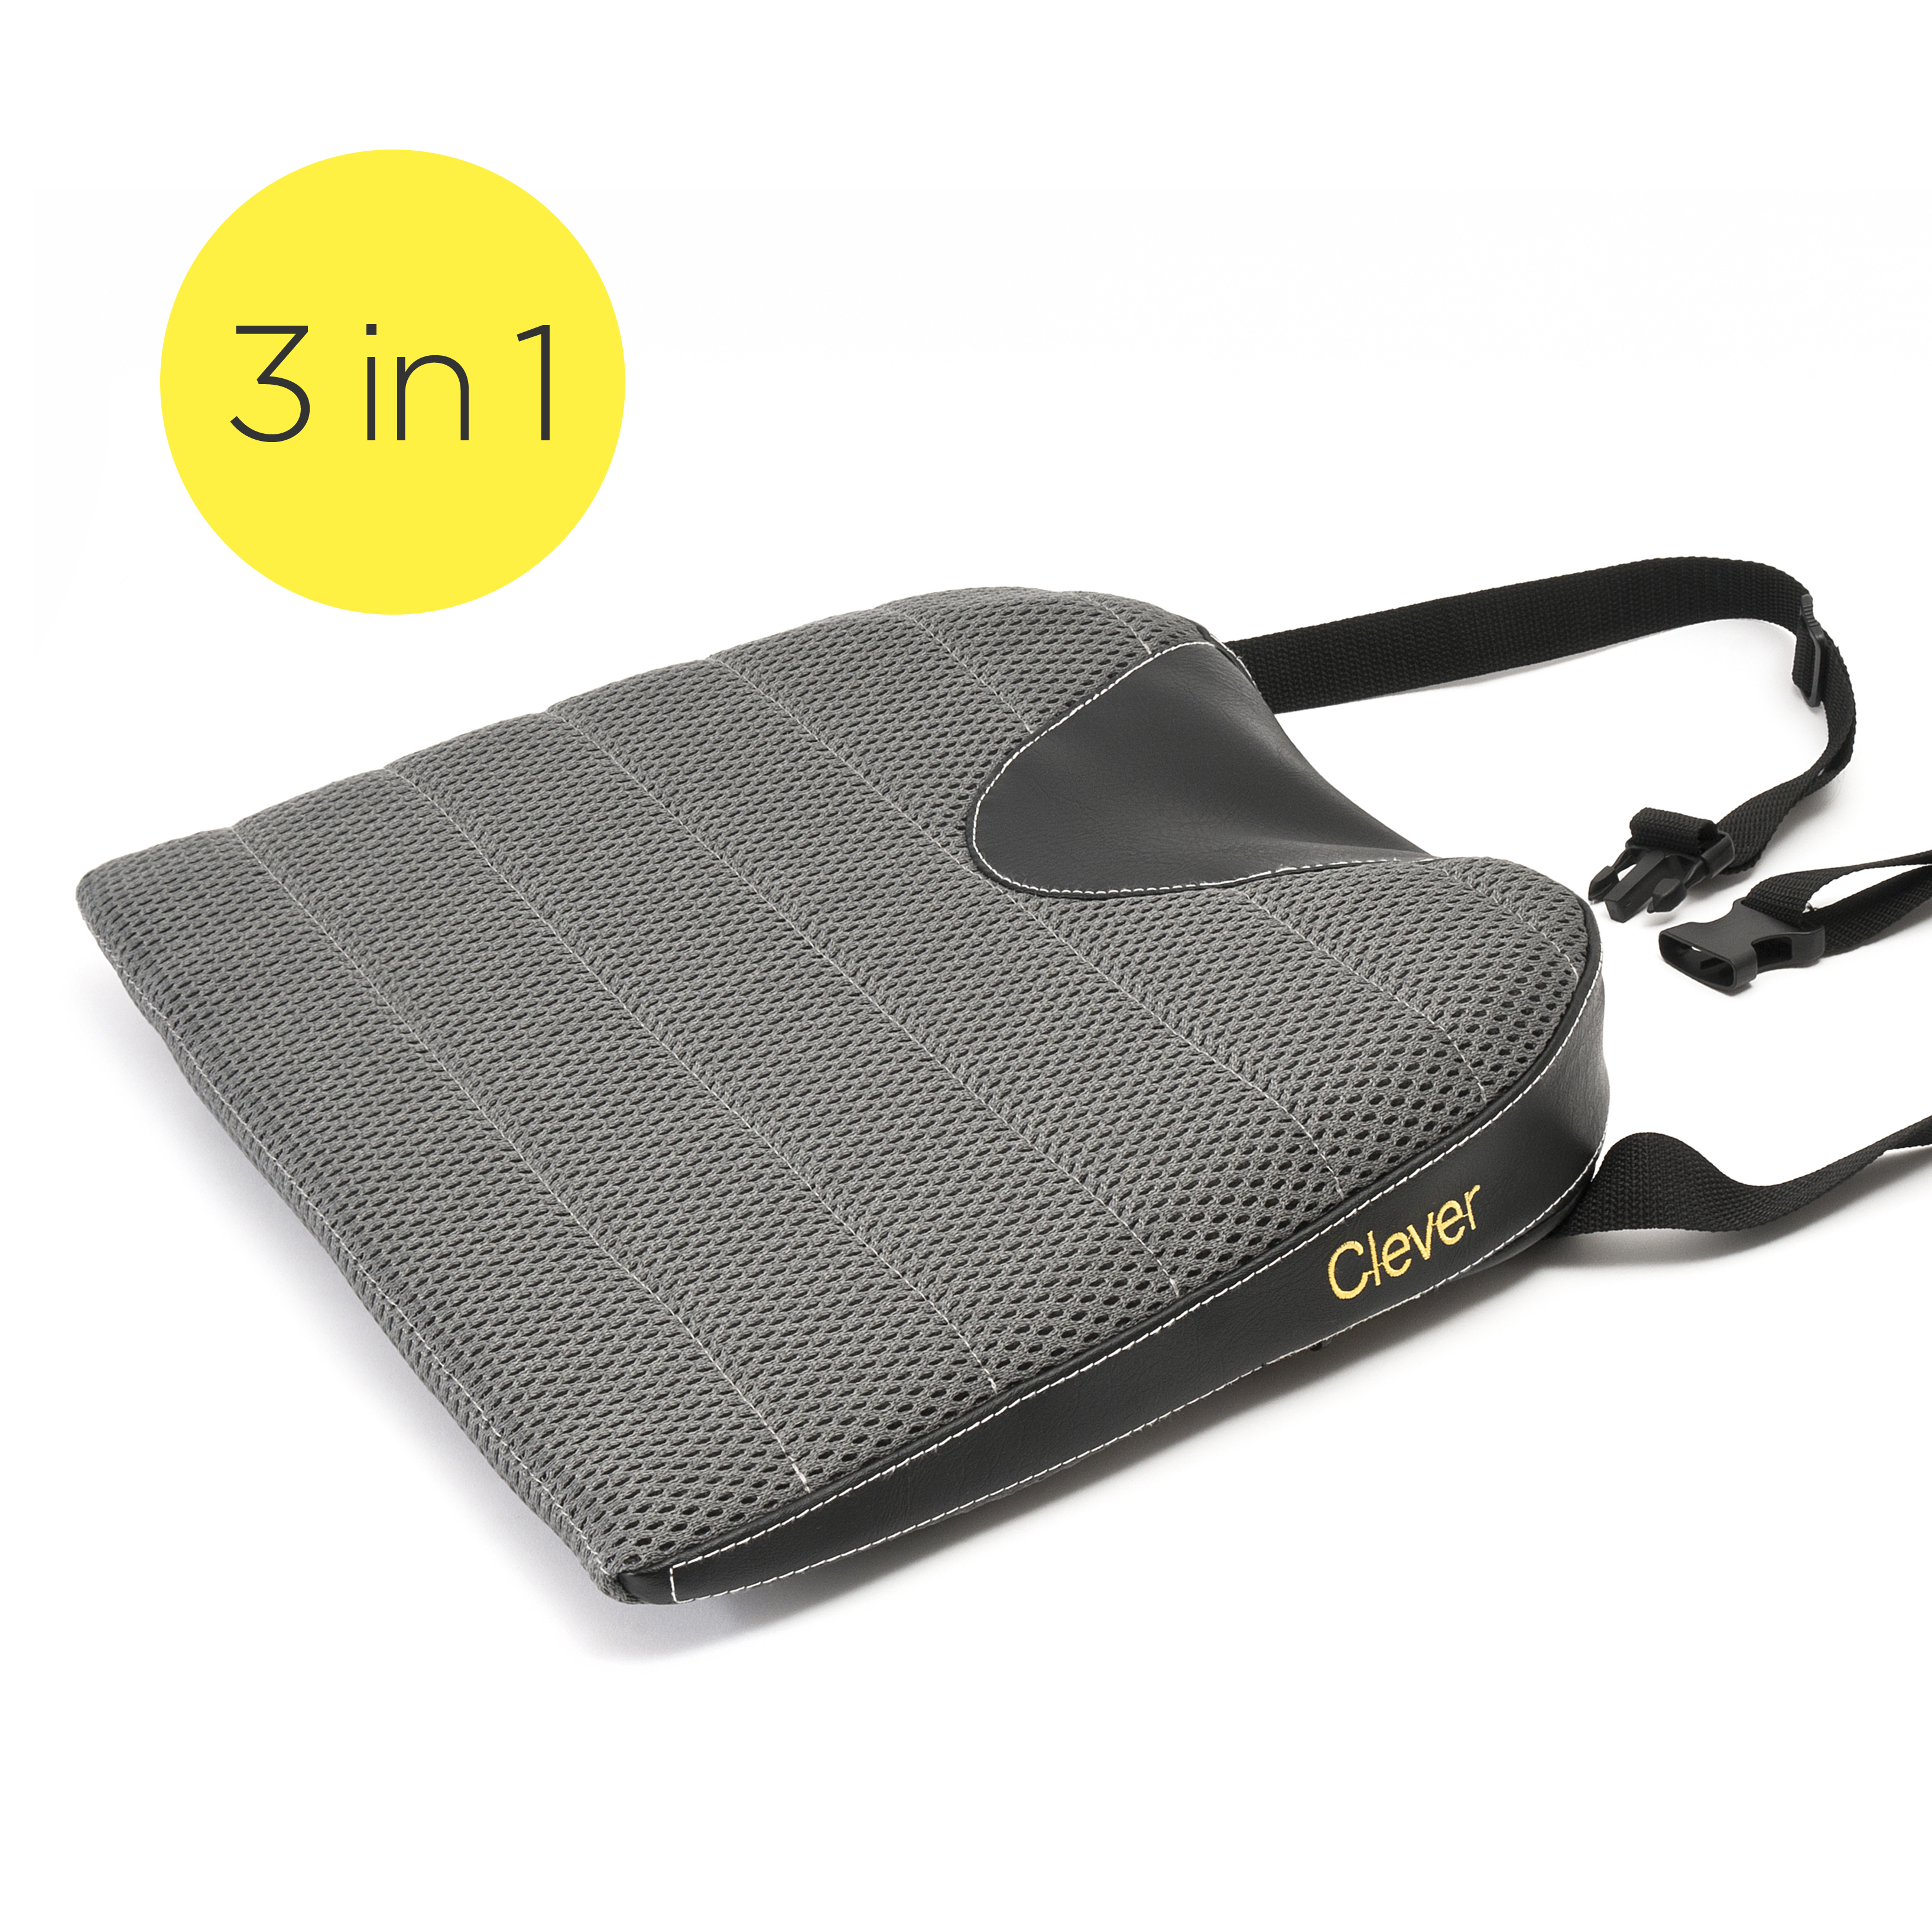 car seat cushion ergonomic three layer technology. Black Bedroom Furniture Sets. Home Design Ideas